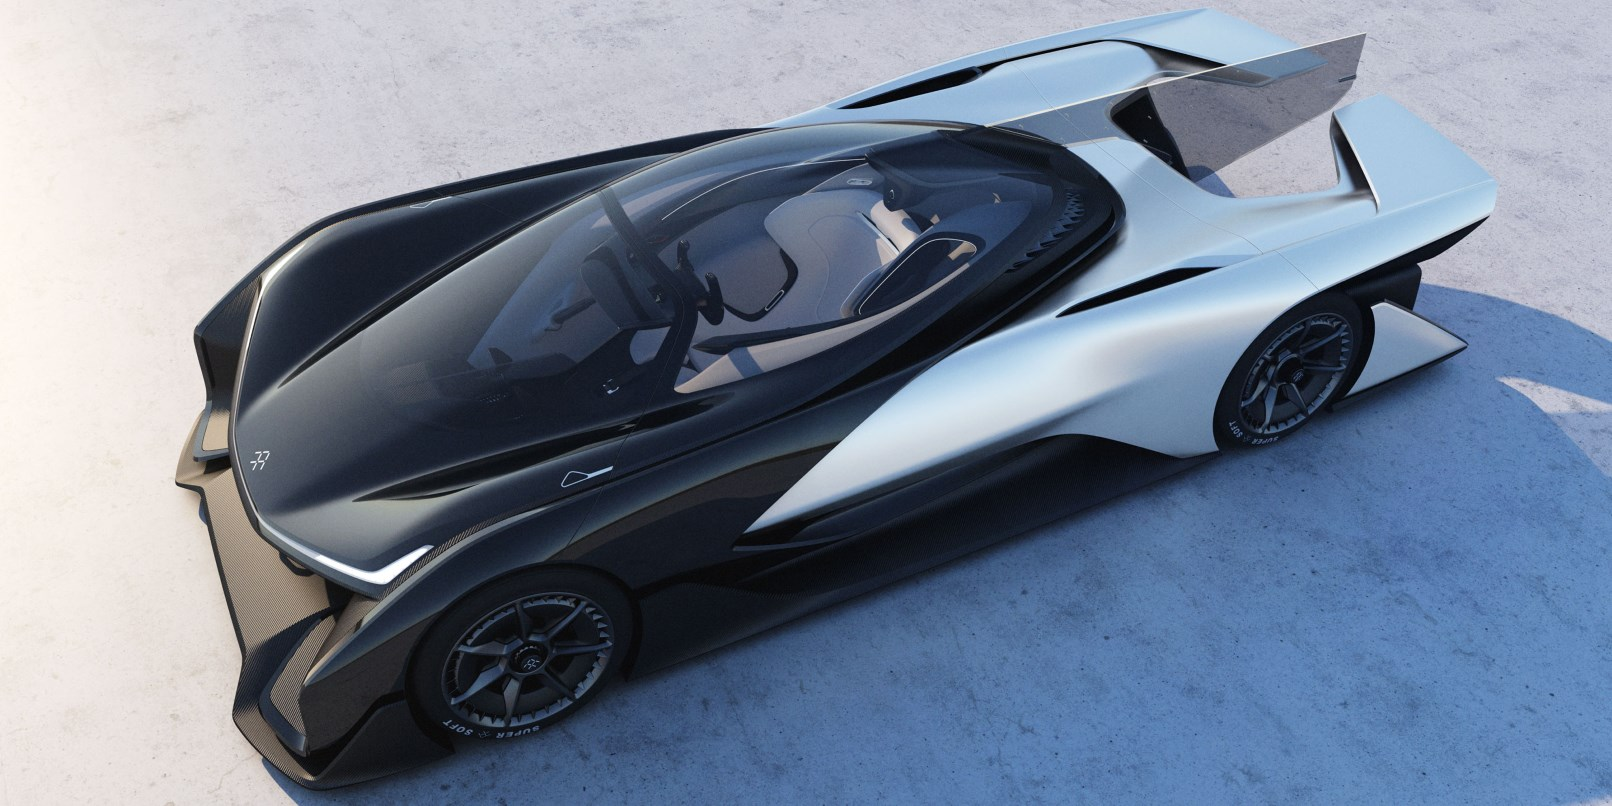 Faraday Future debuts its stunning FFZero1 electric car concept